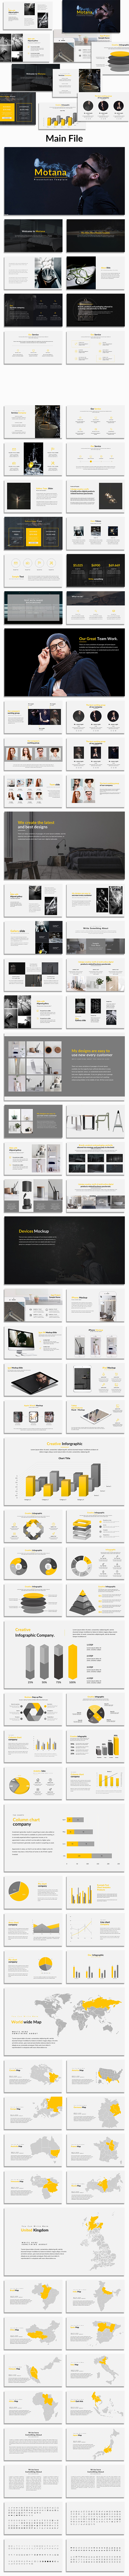 Motana Multipurpose PowerPoint Template - Creative PowerPoint Templates